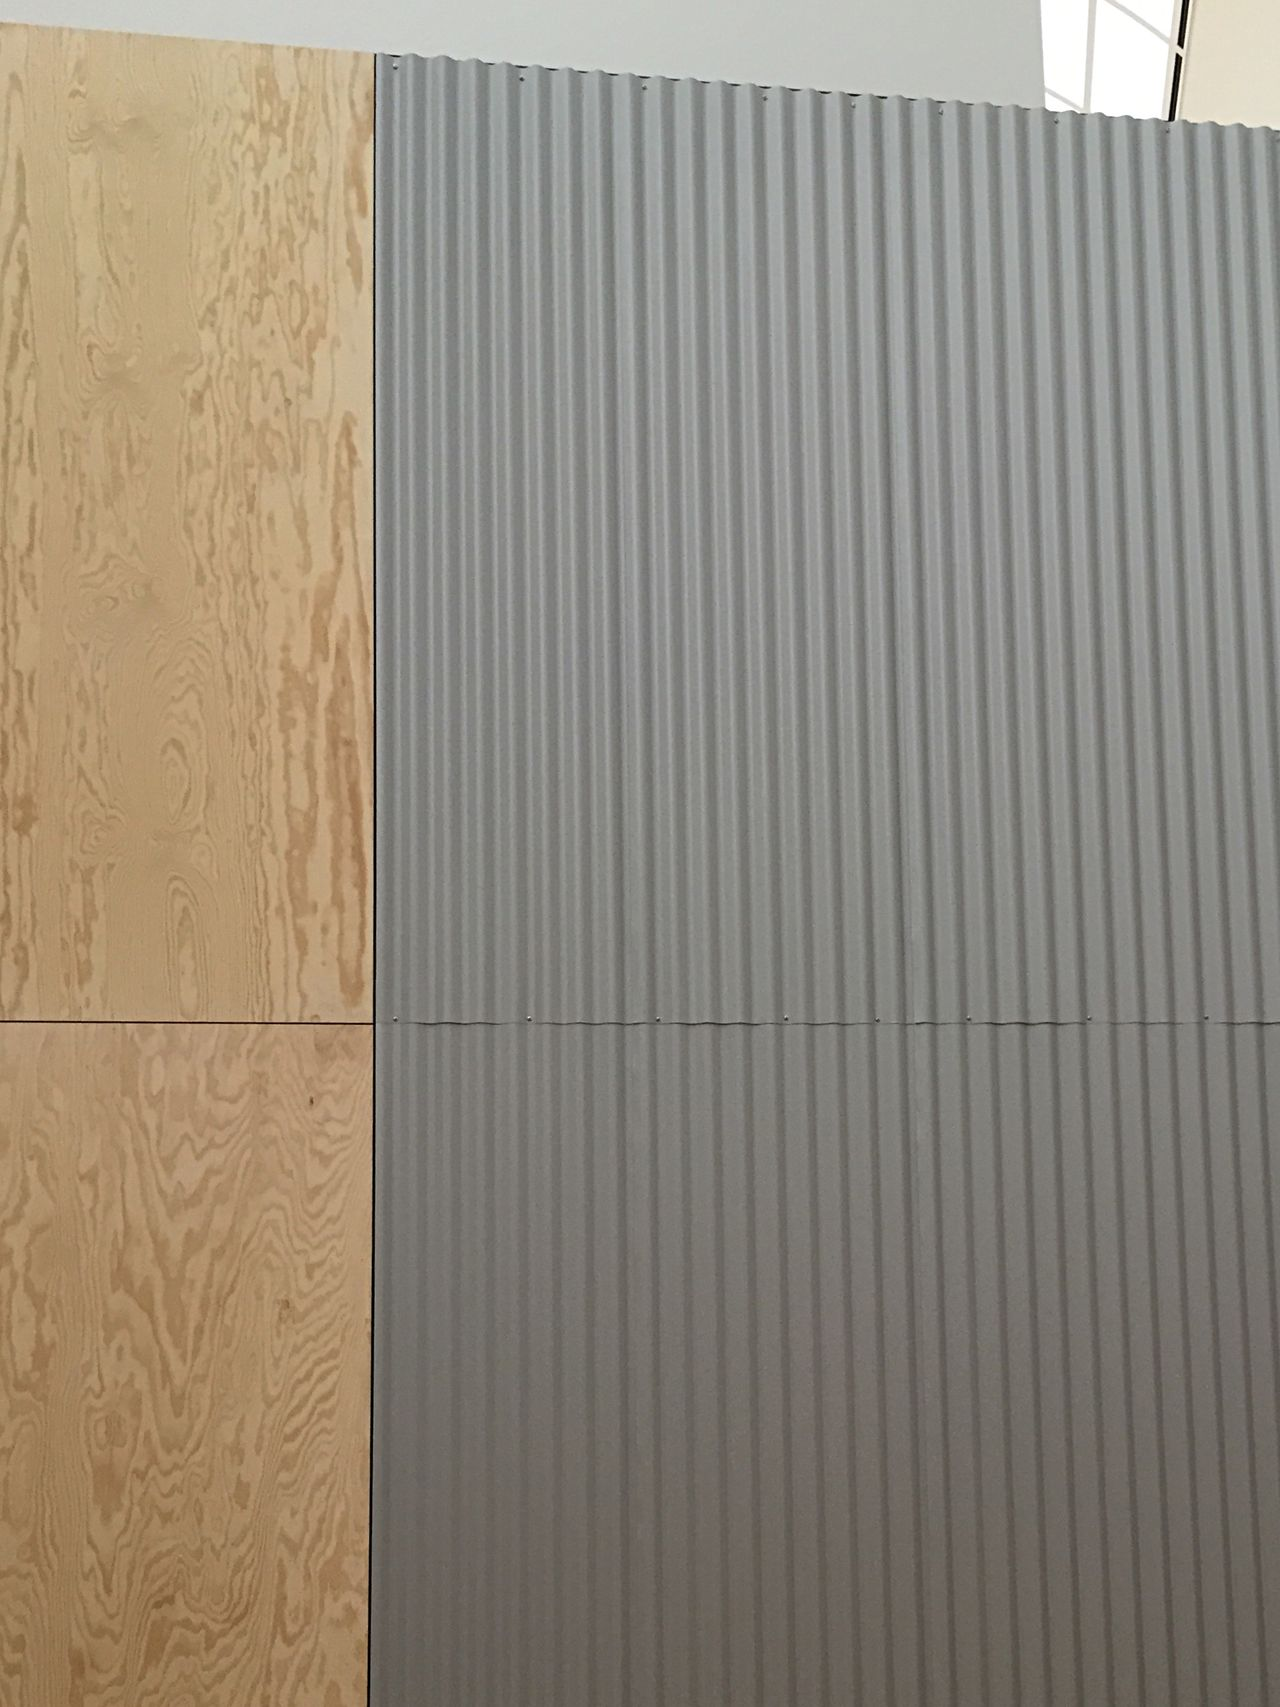 Corrugated Sheet Wellblech Wood Material Pvc Textures Surface Cool Material Indoor Design